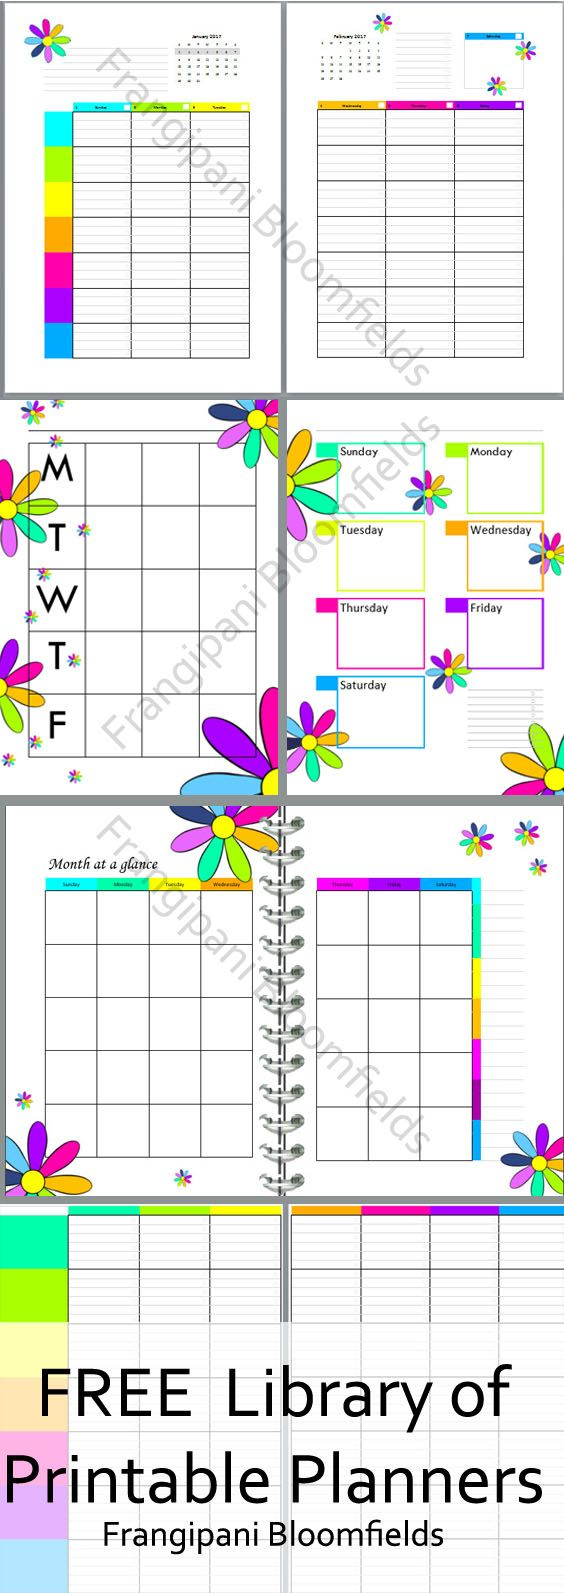 Free Homeschool Planner | FInancial Planner | Blog Planner |Printable | Homeschooling | Education | Learning | Teacher | Student | Curriculum Plan. Visit Frangipani Bloomfields to access the free library of printables or pin for later!